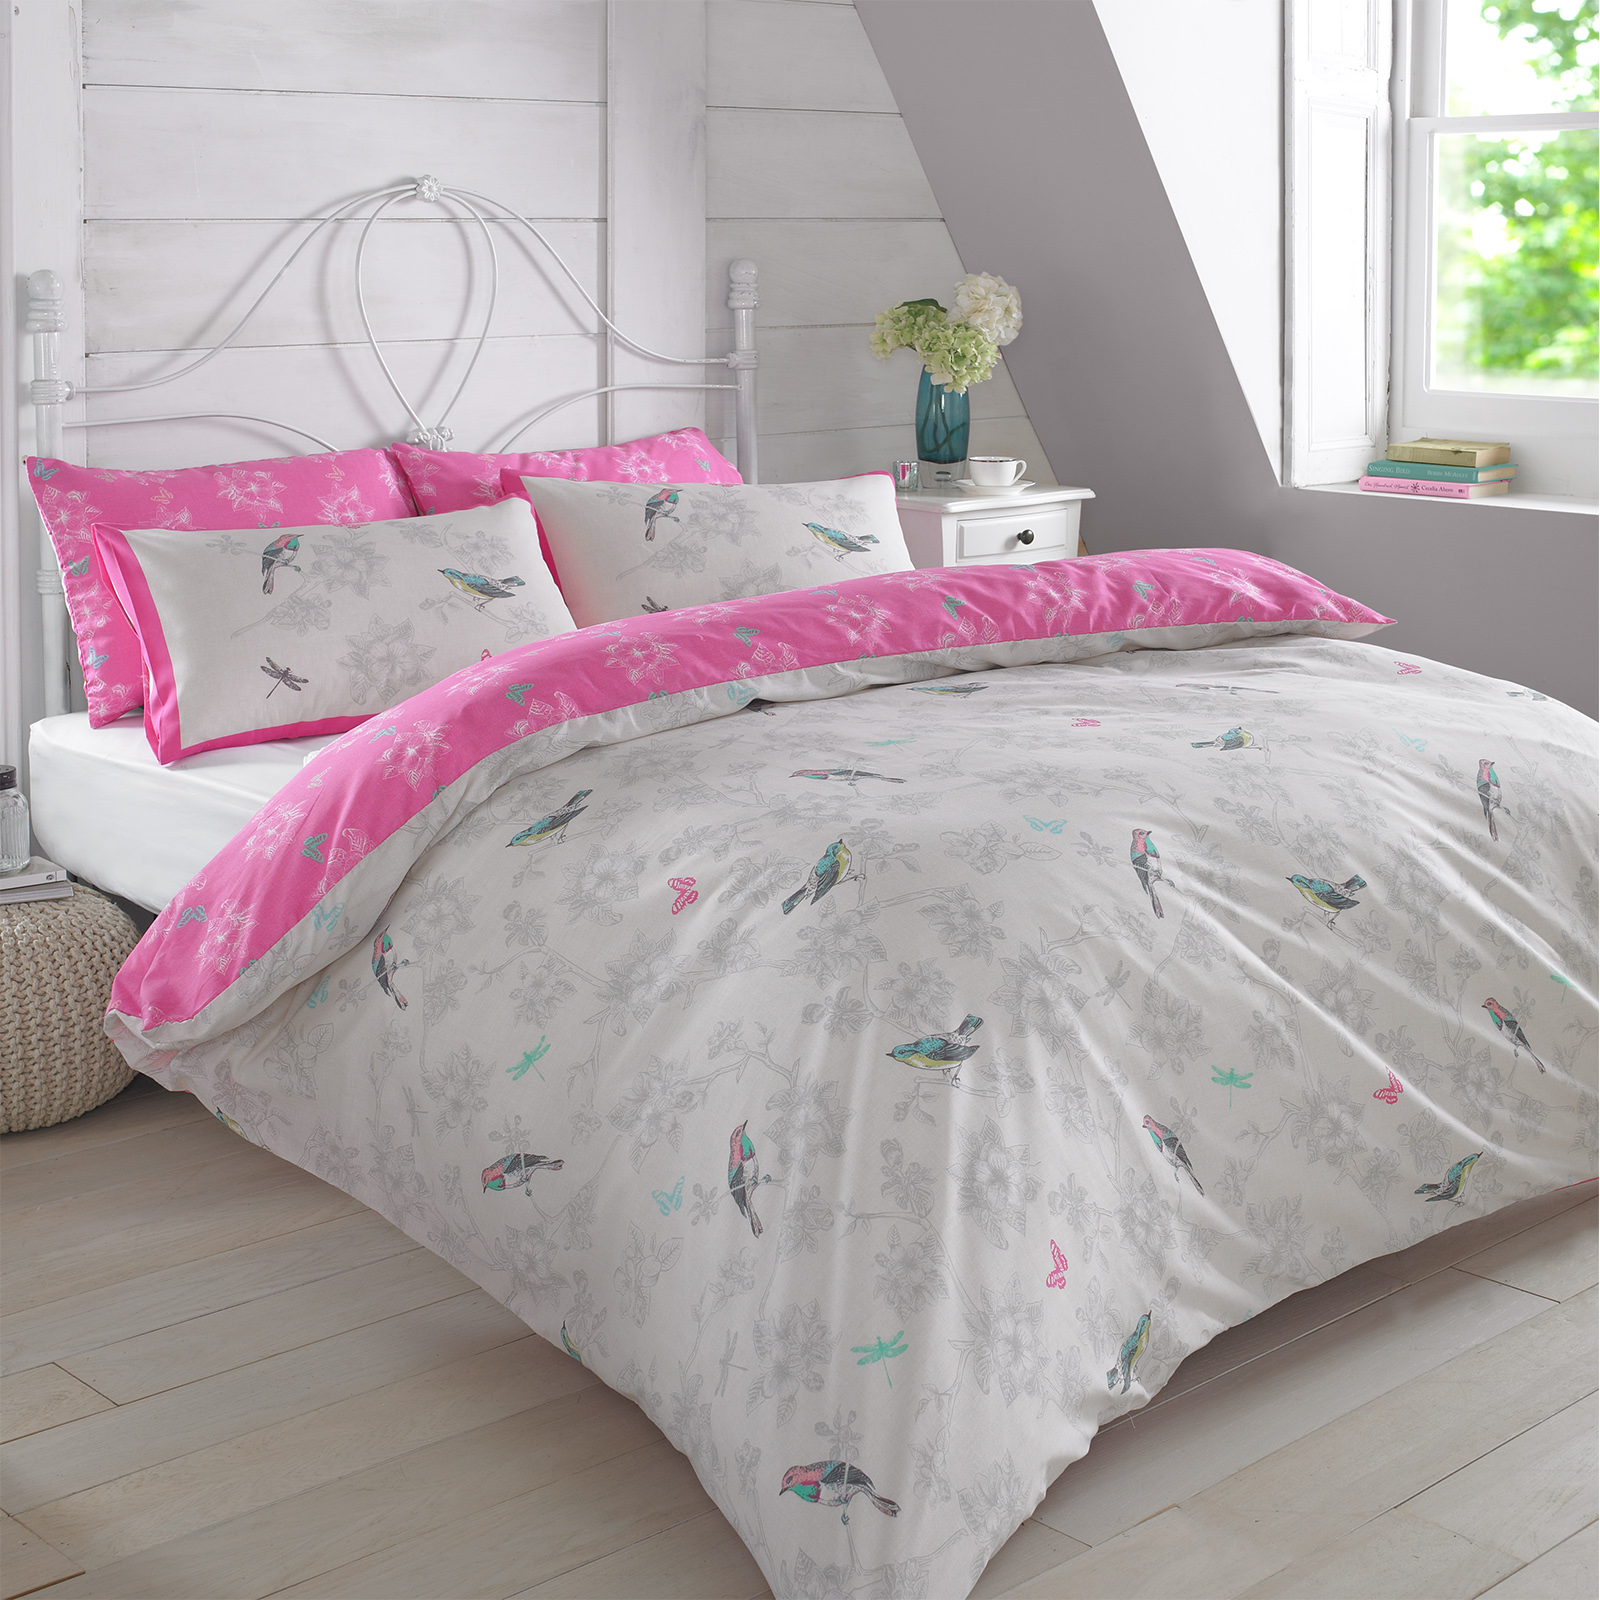 Duvet Cover With Pillowcase Bedding Set Vintage Bird Toile